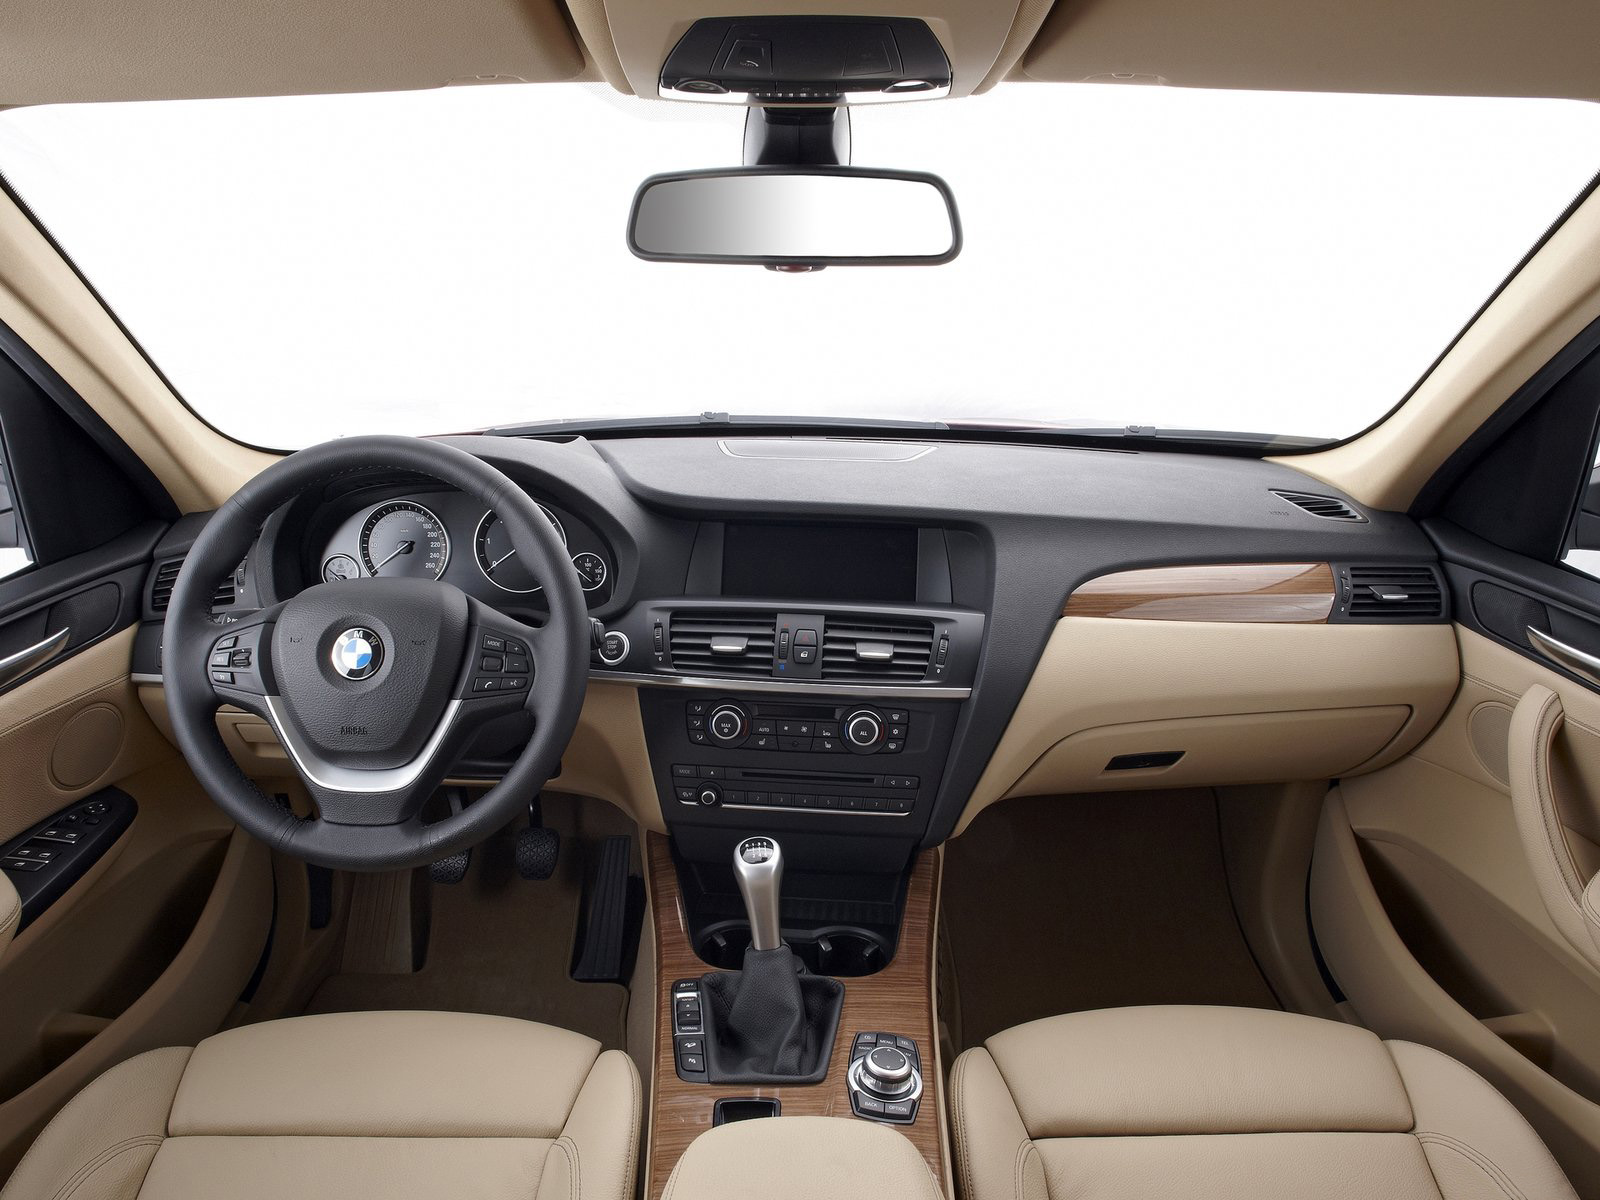 Best Car Models & All About Cars: 2012 BMW X3